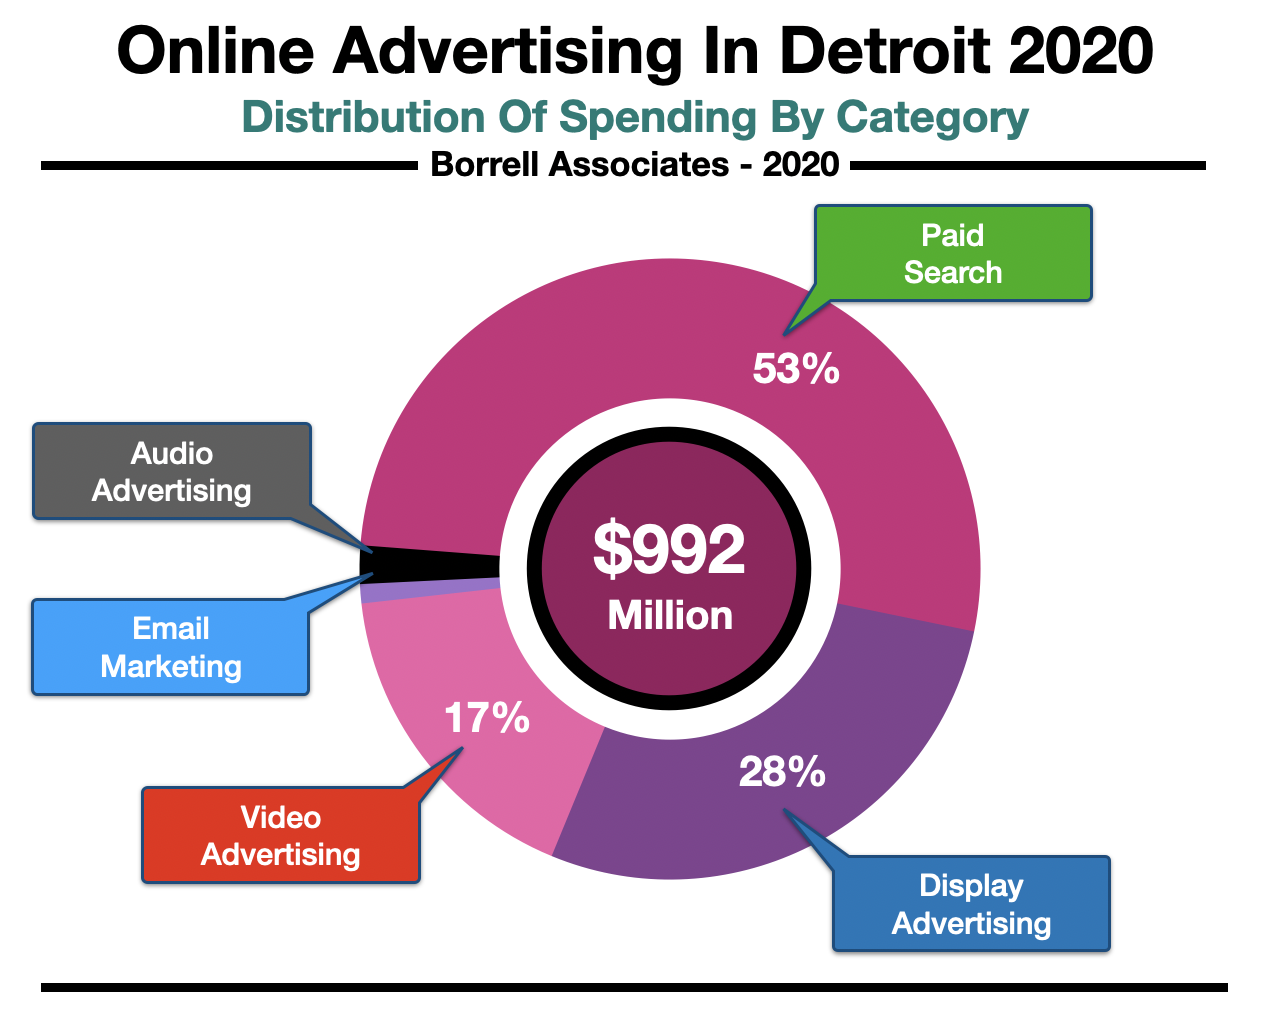 Advertise In Detroit Online Spending